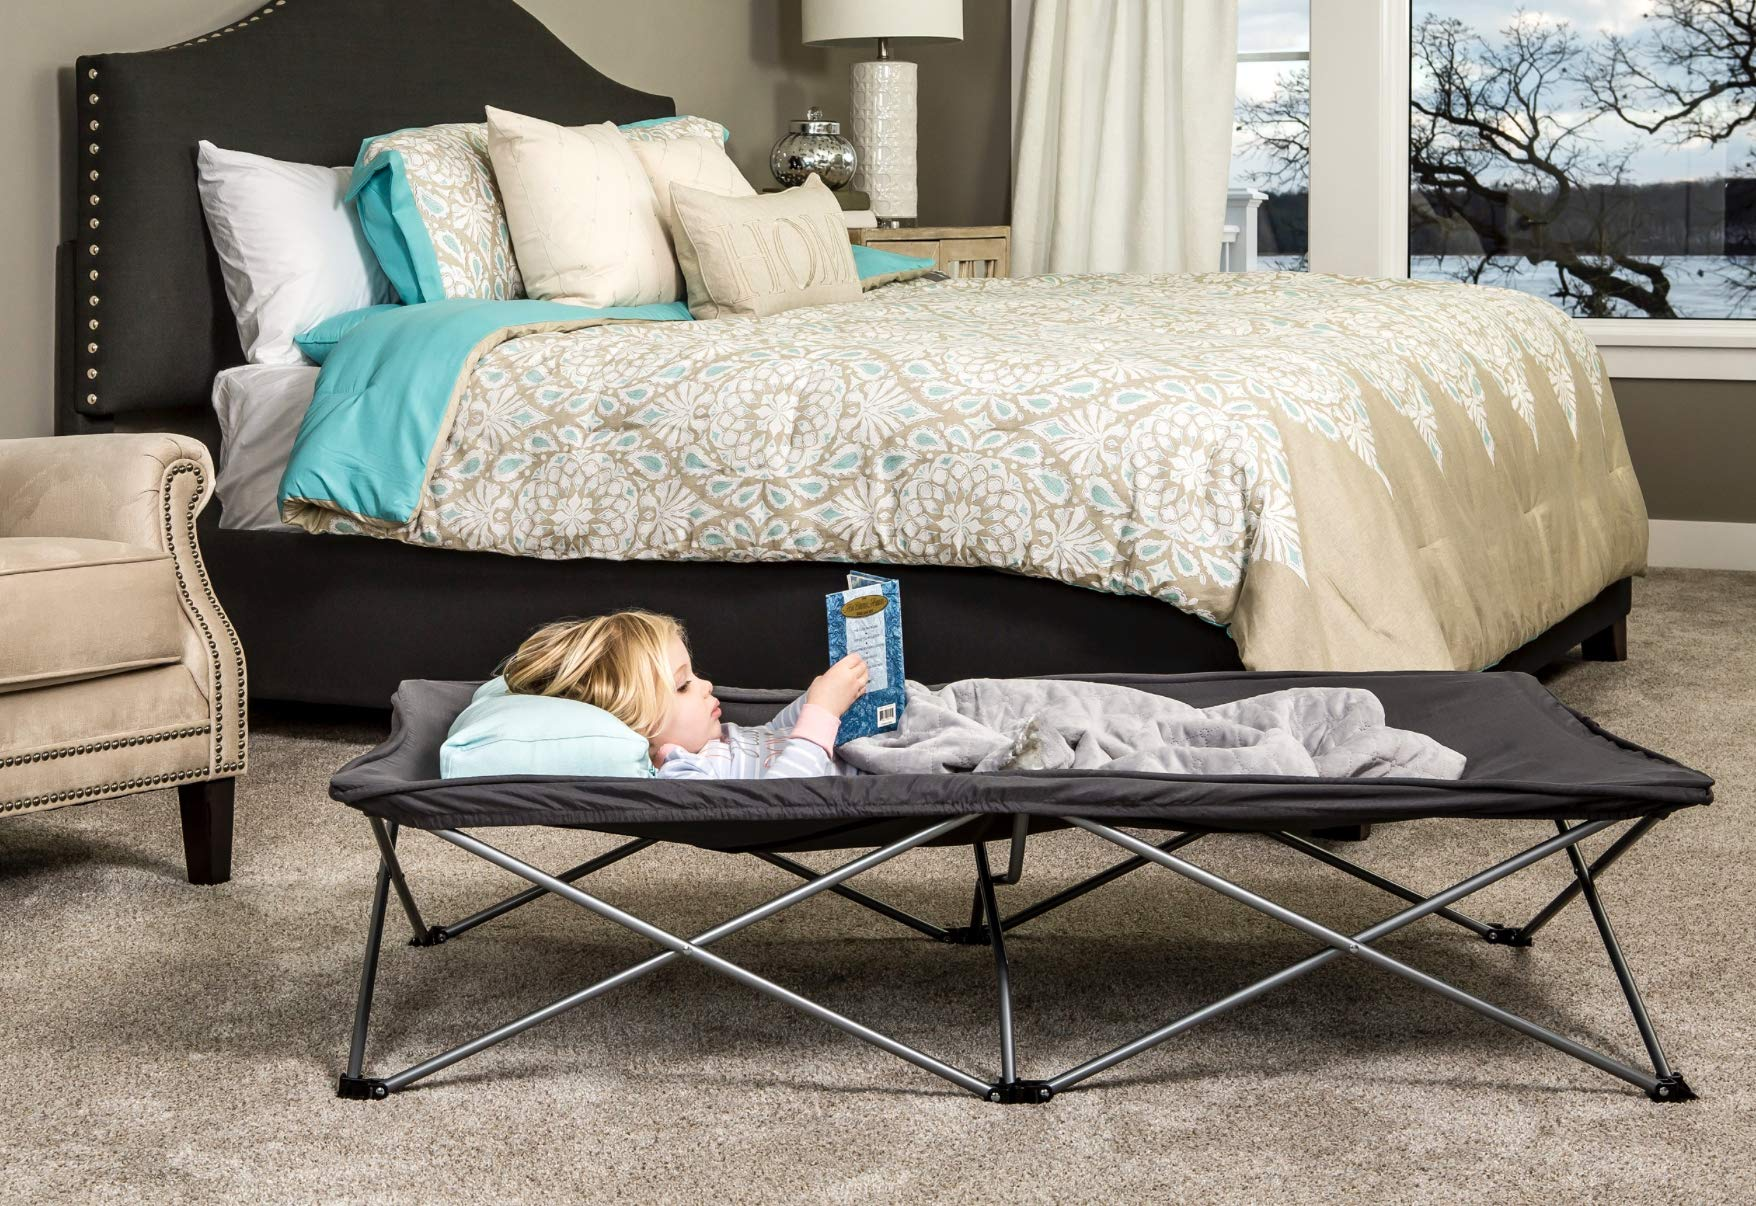 Regalo My Cot Extra Long Portable Bed, Includes Fitted Sheet, Gray by Regalo